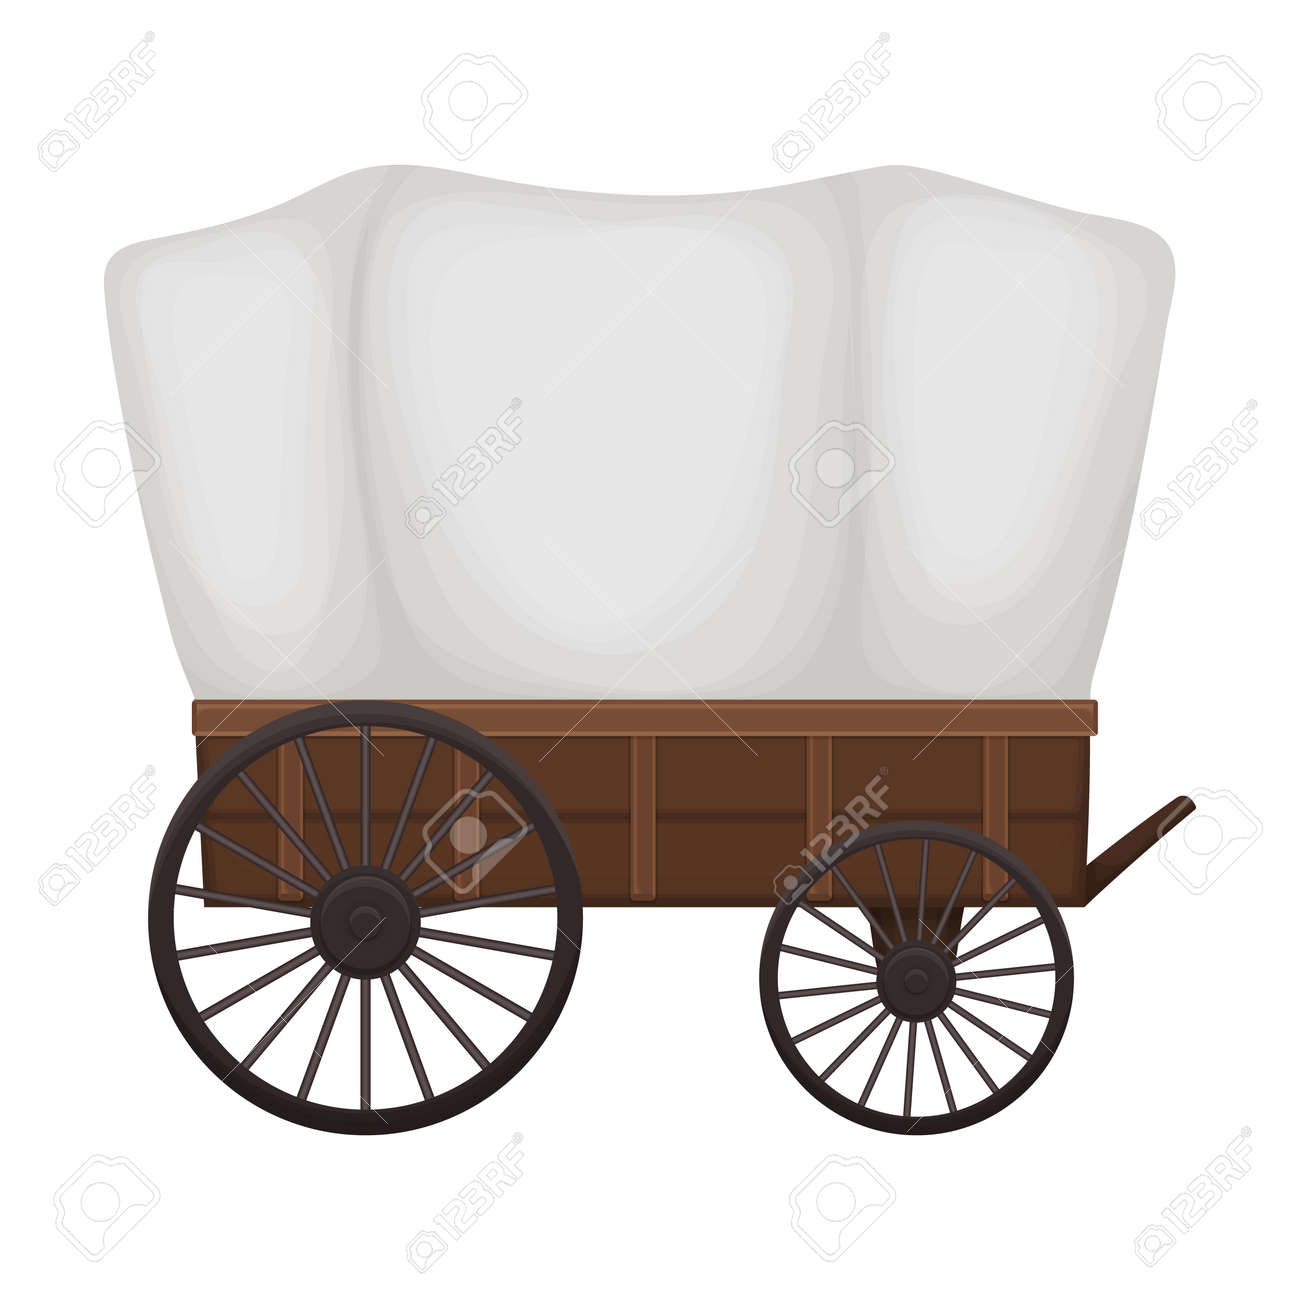 Wild west wagon cartoon vector icon.Cartoon vector illustration old carriage. Isolated illustration of wild west wagon icon on white background. - 167509817